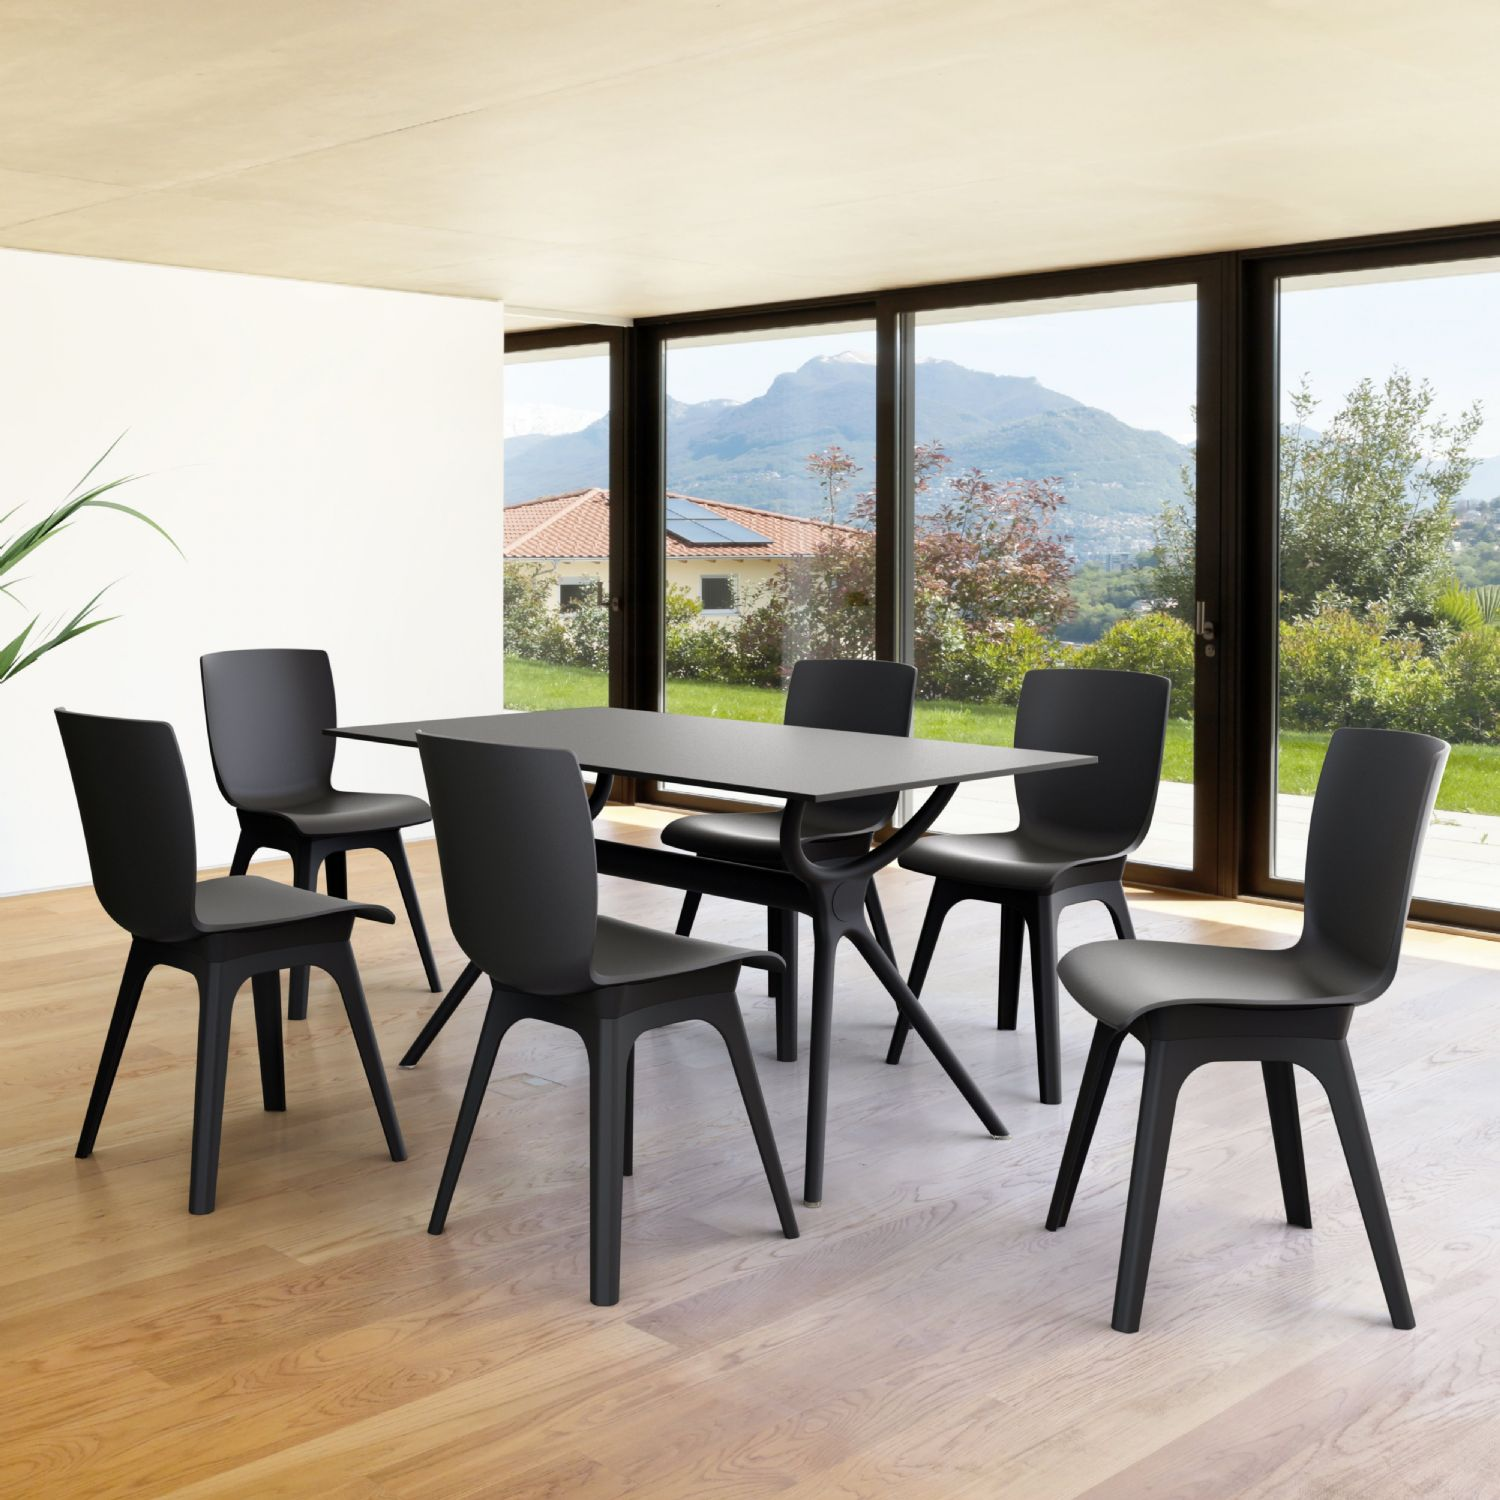 Mio PP Modern Dining Set Black 7 Piece with 55 inch Air Table ISP0941S-BLA - 1